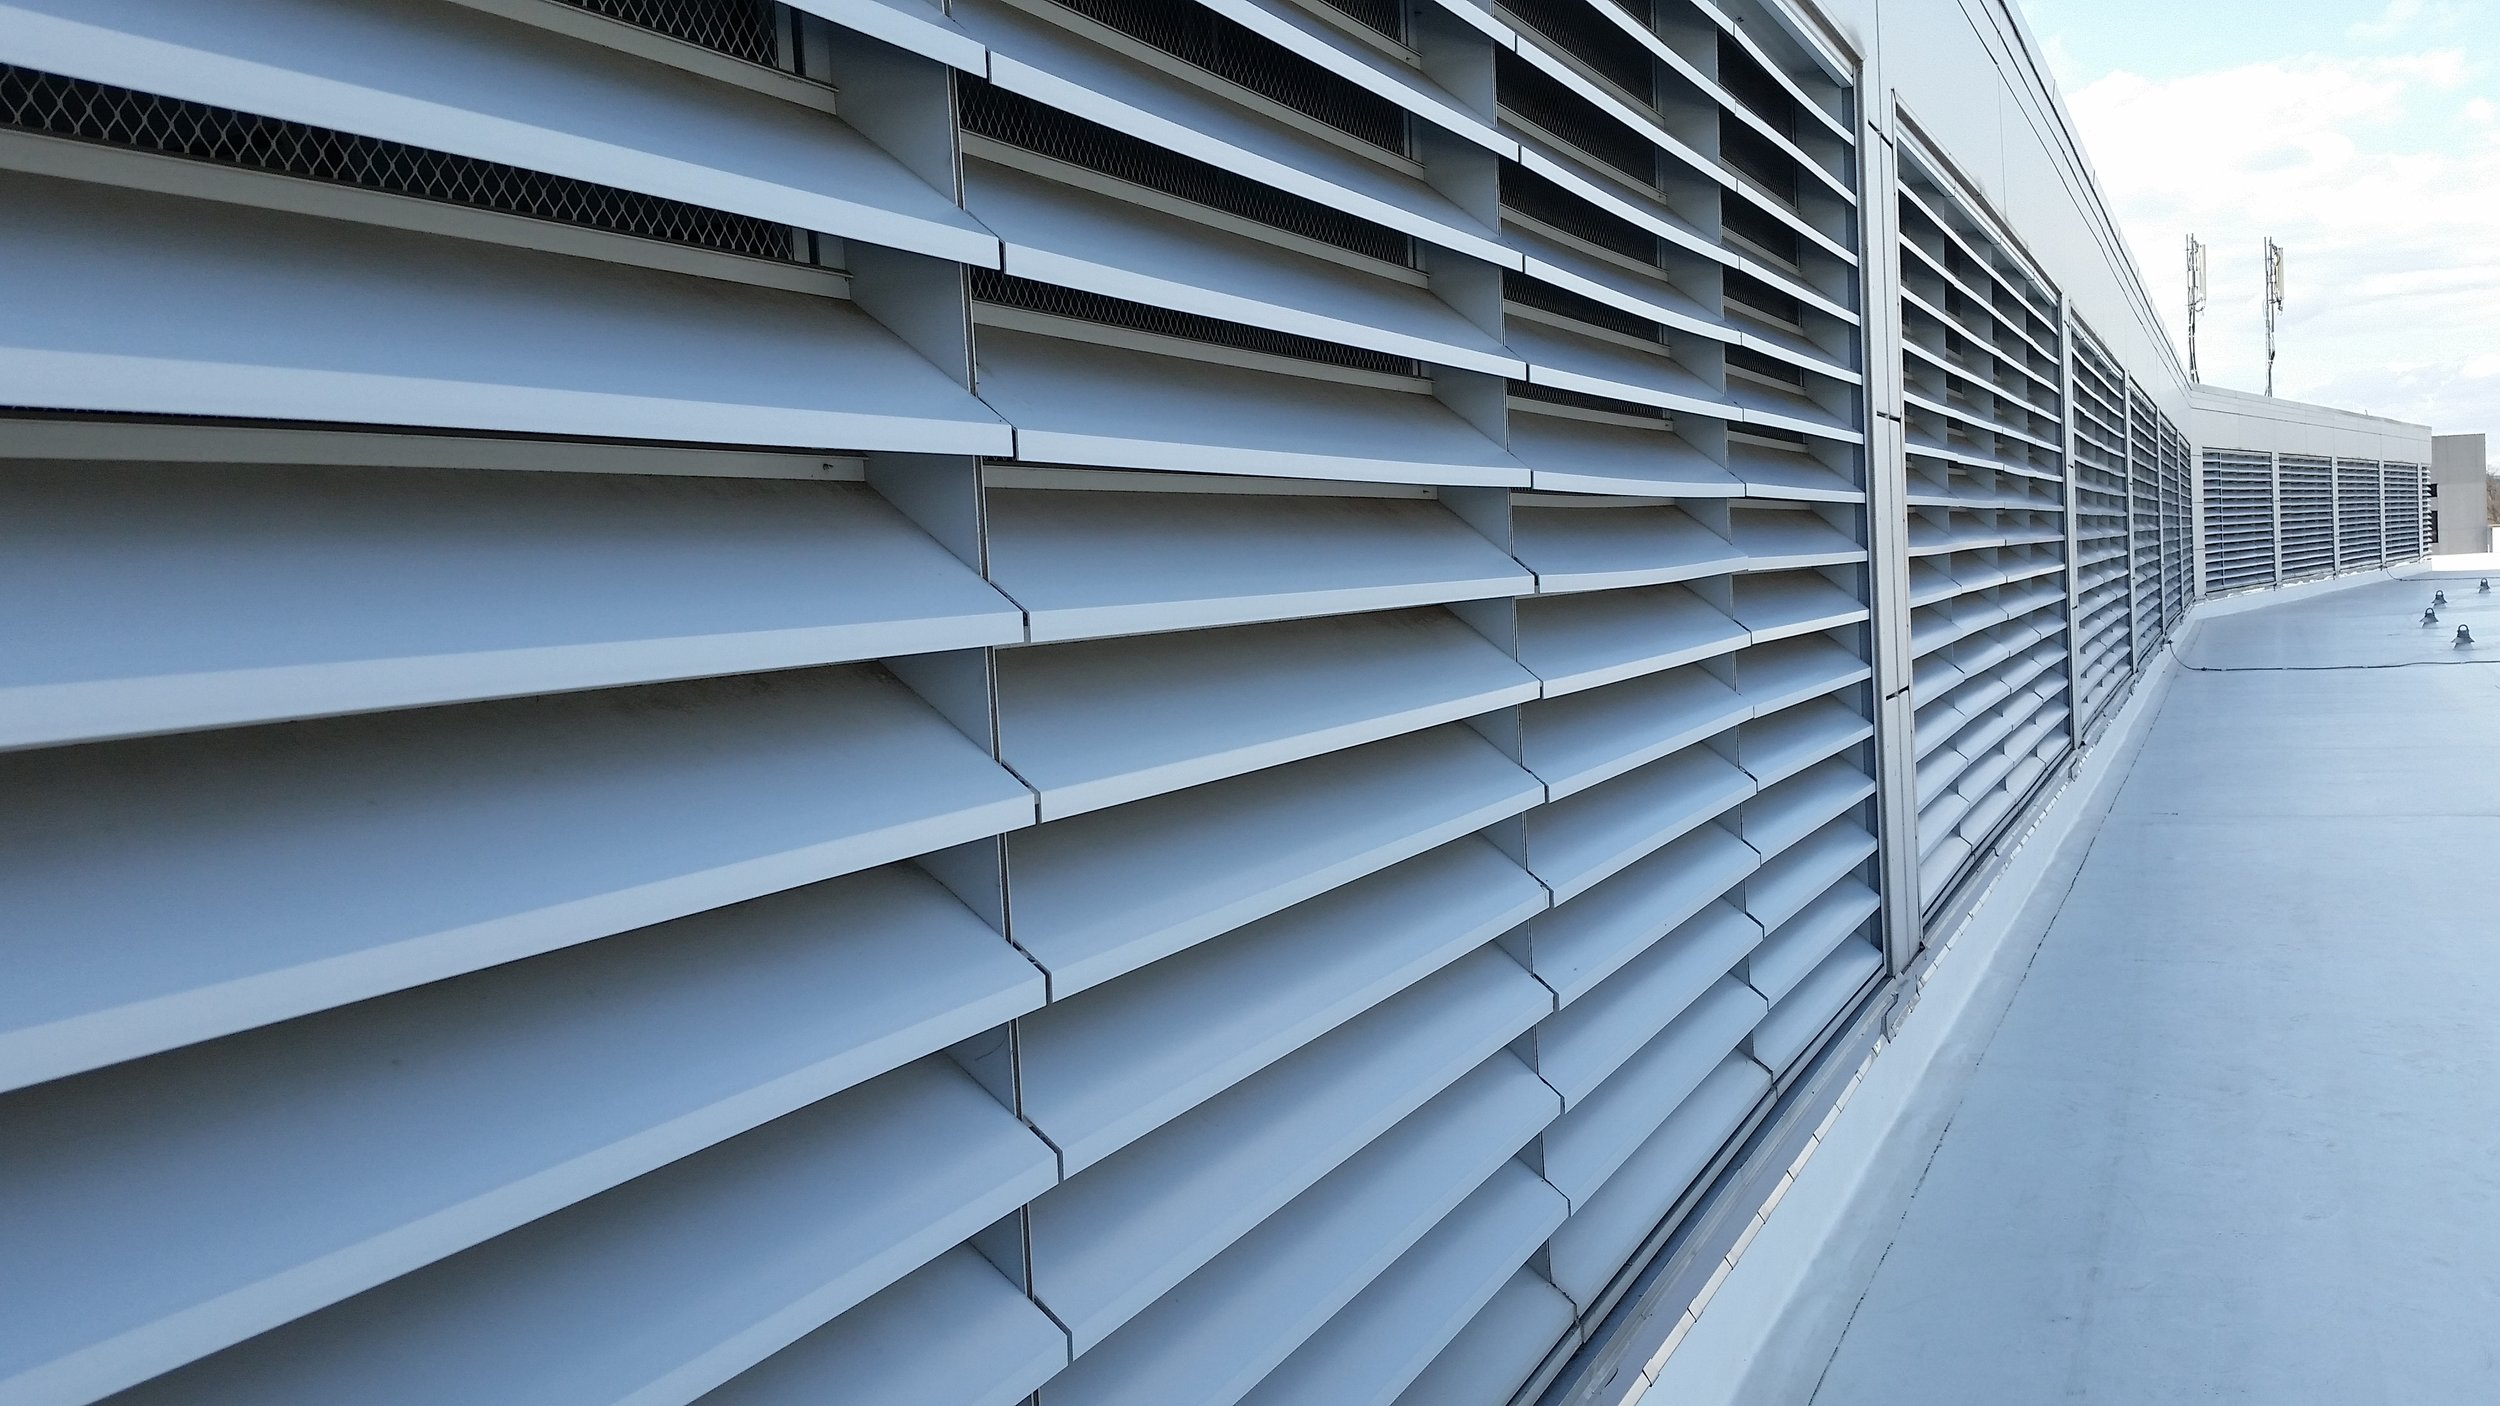 Wiley Federal Building: Louvers leak study